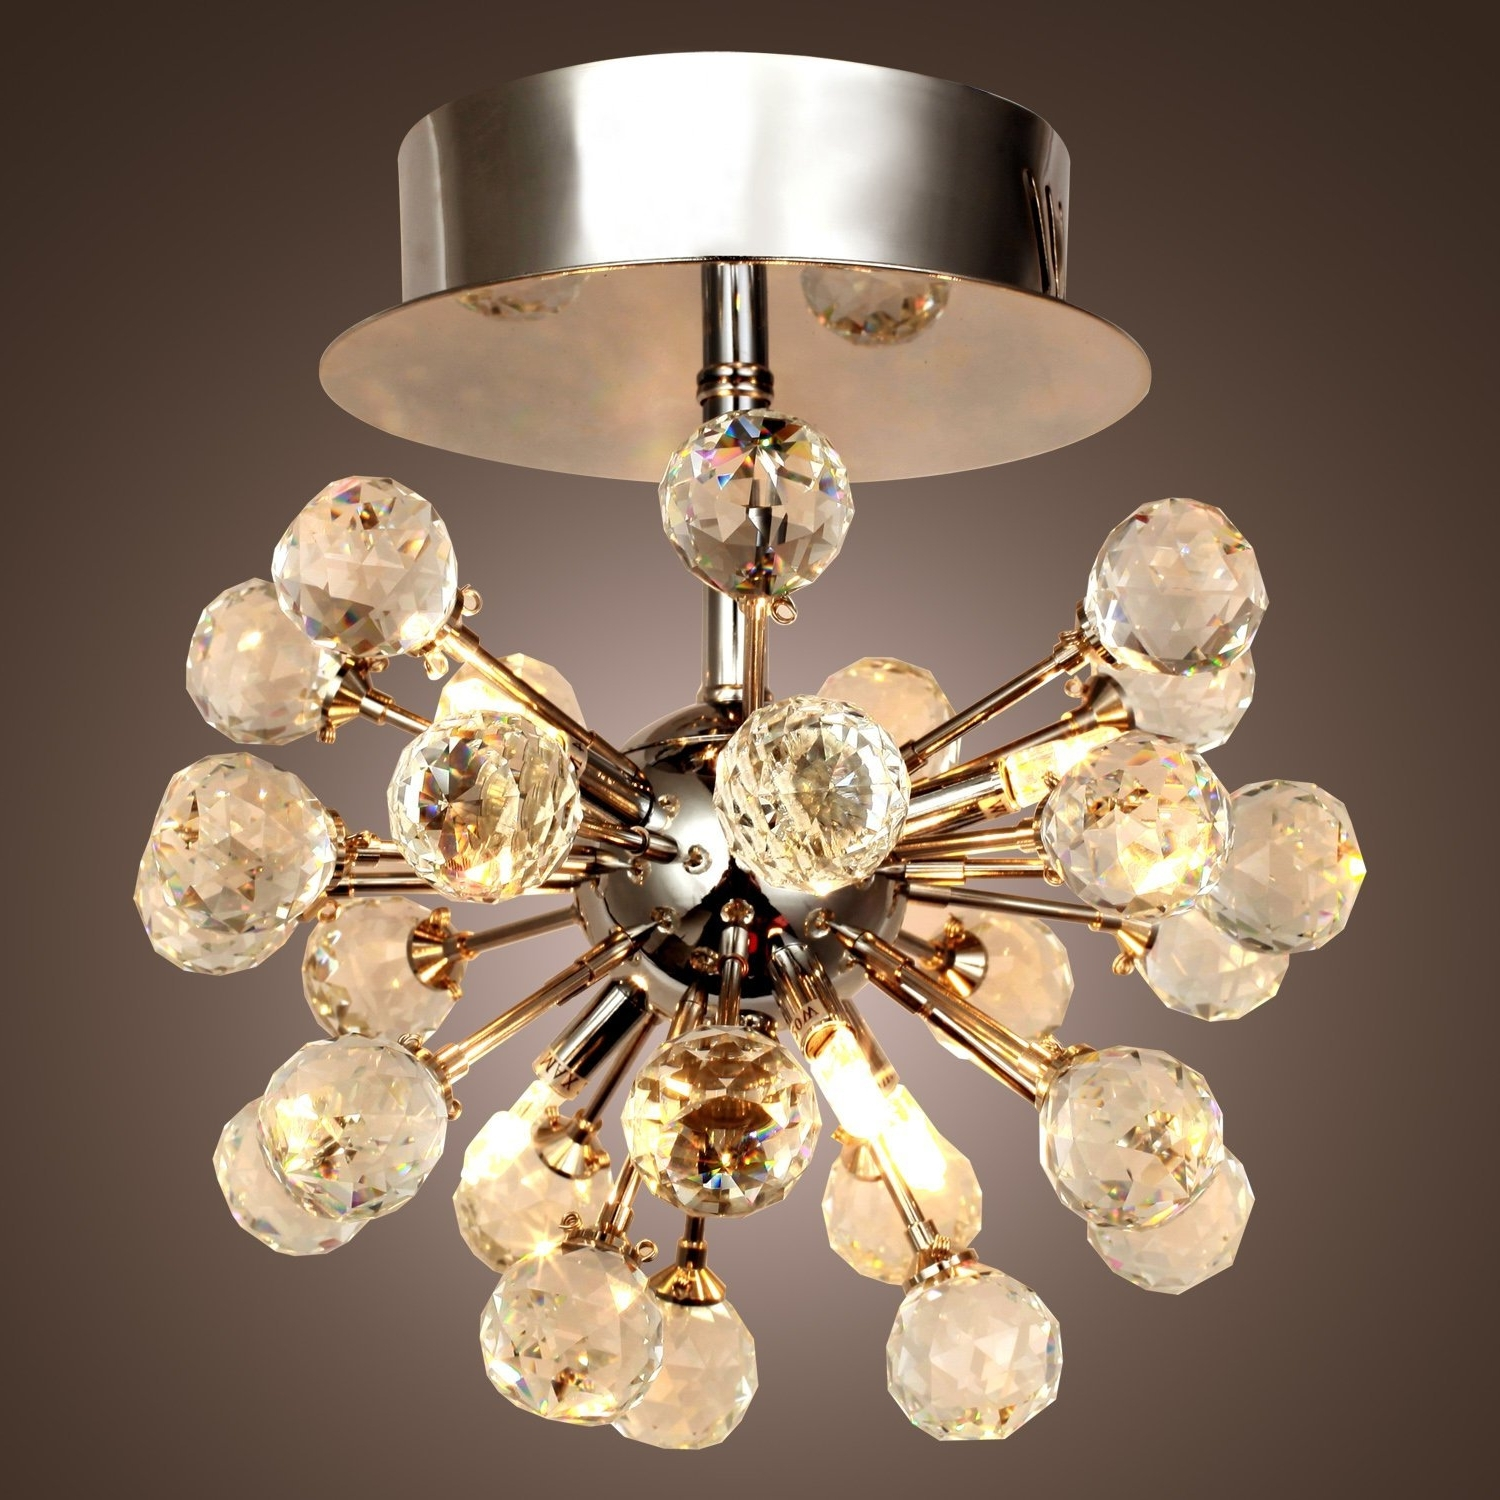 Short Chandeliers Pertaining To Most Recently Released Lightinthebox Max 10W K9 Crystal Chandelier With 6 Lights In Globe (View 11 of 15)